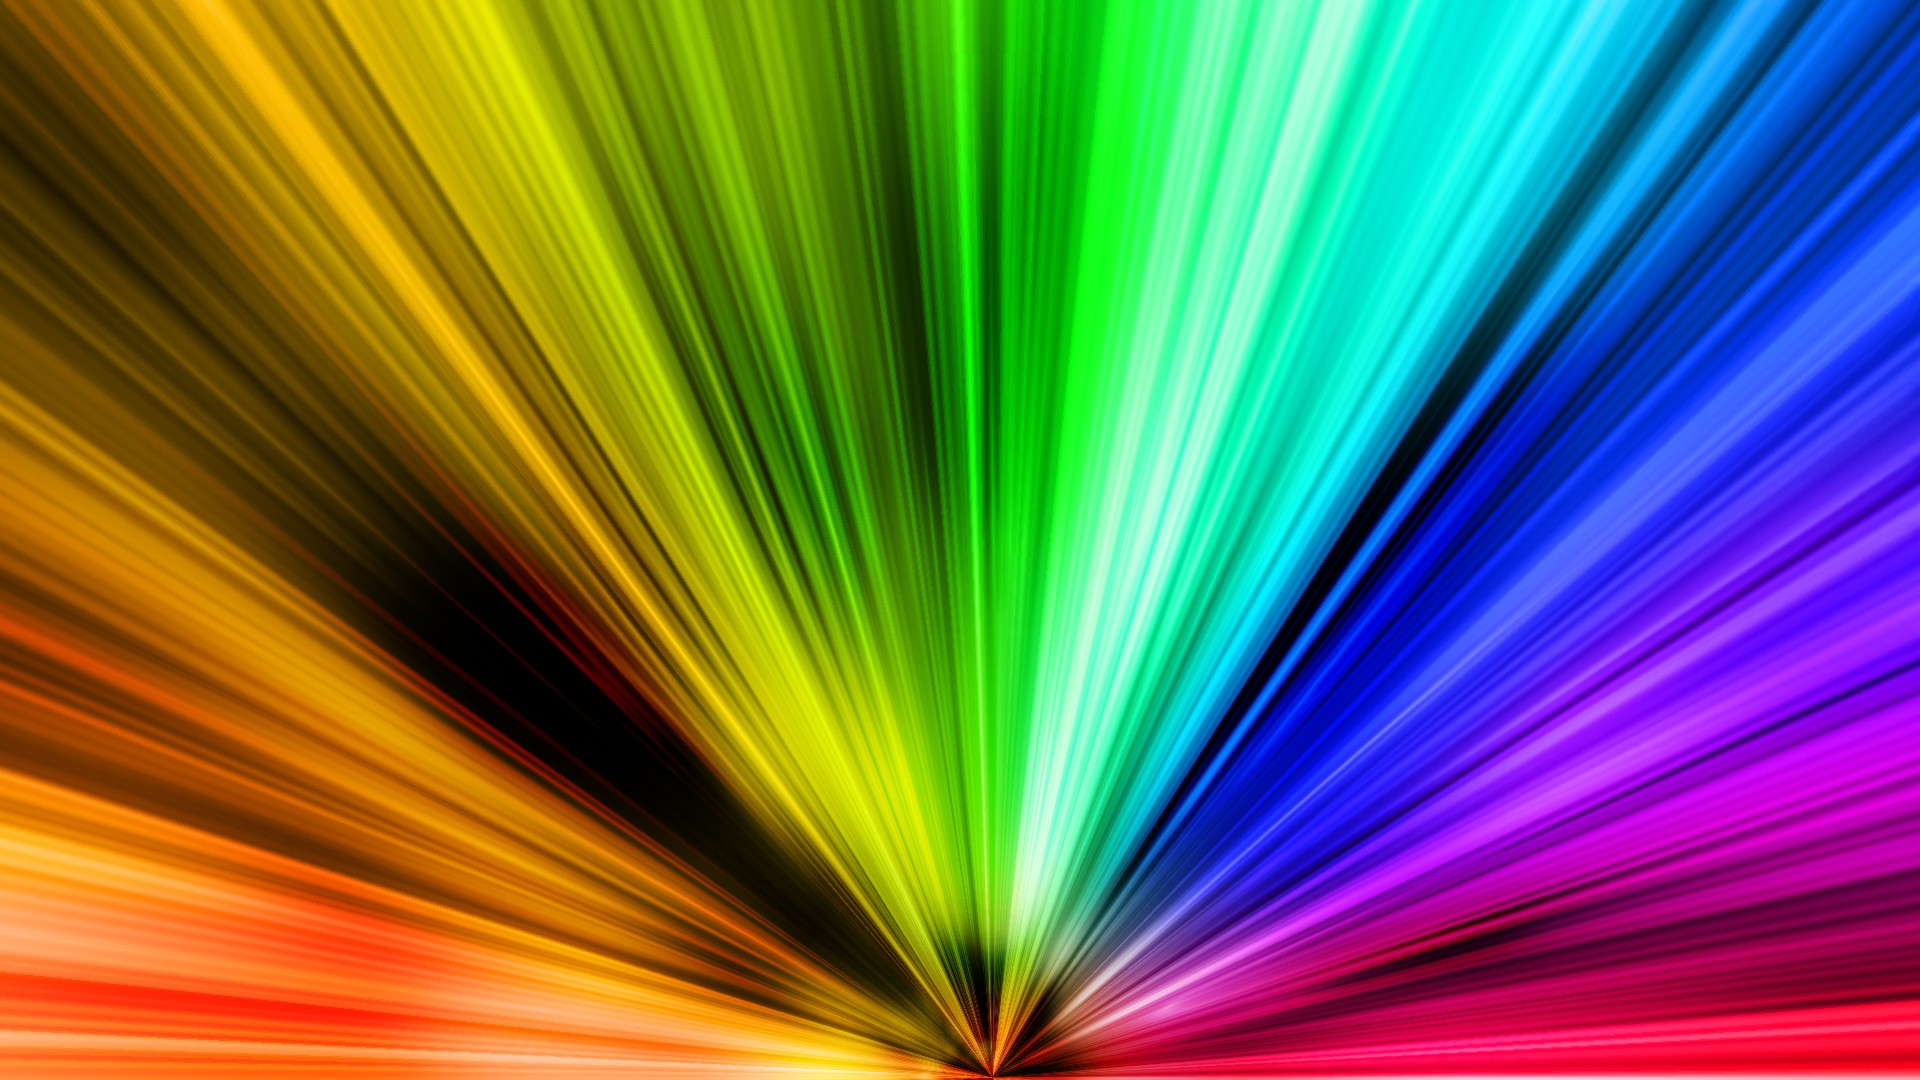 color noise hd desktop - photo #26